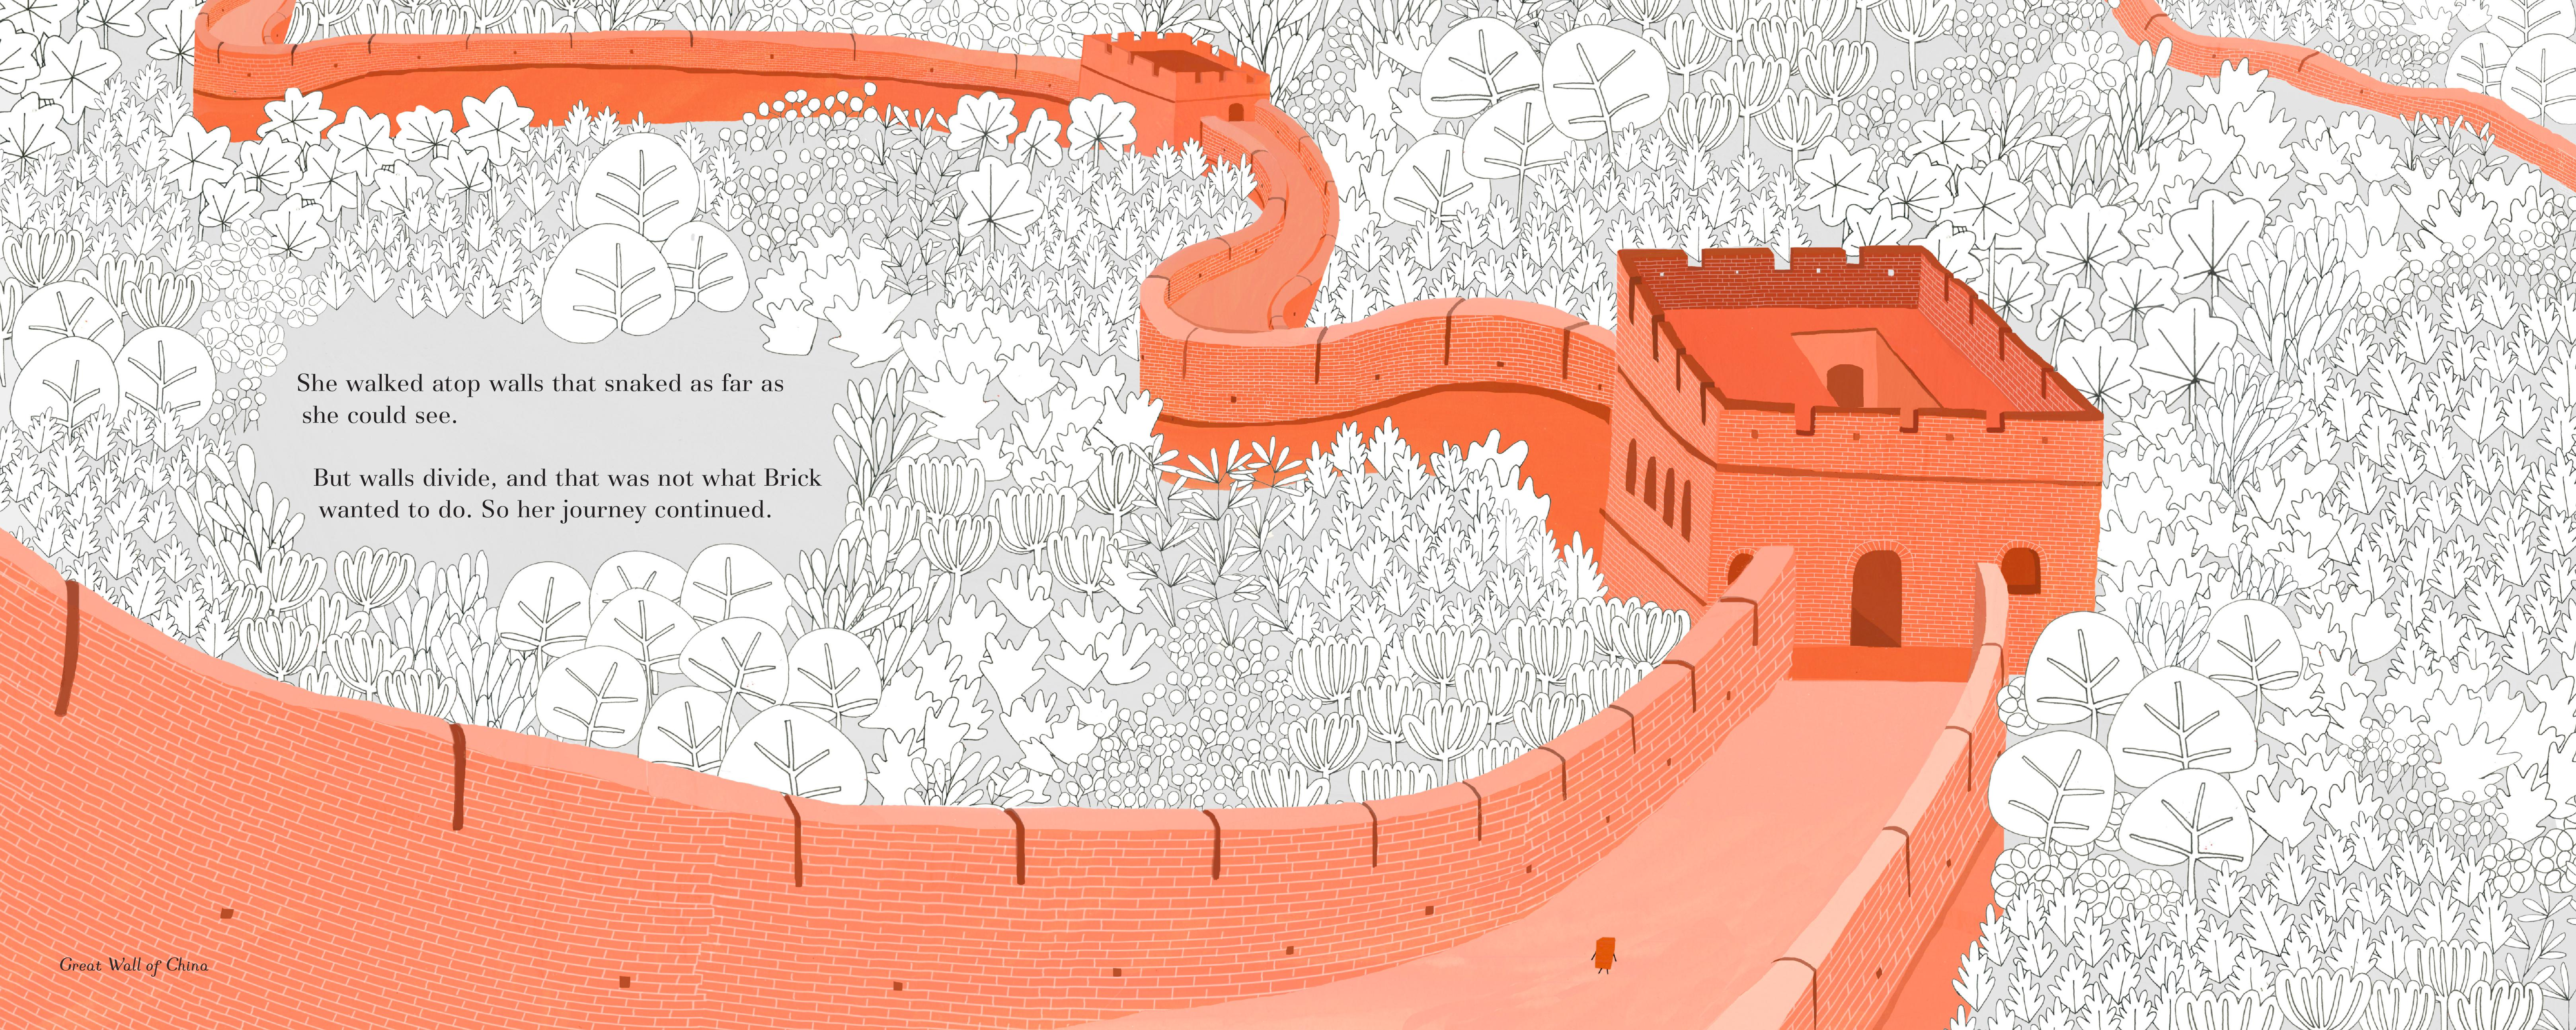 celebrate-picture-books-picture-book-review-brick-who-found-herself-in-architecture-wall